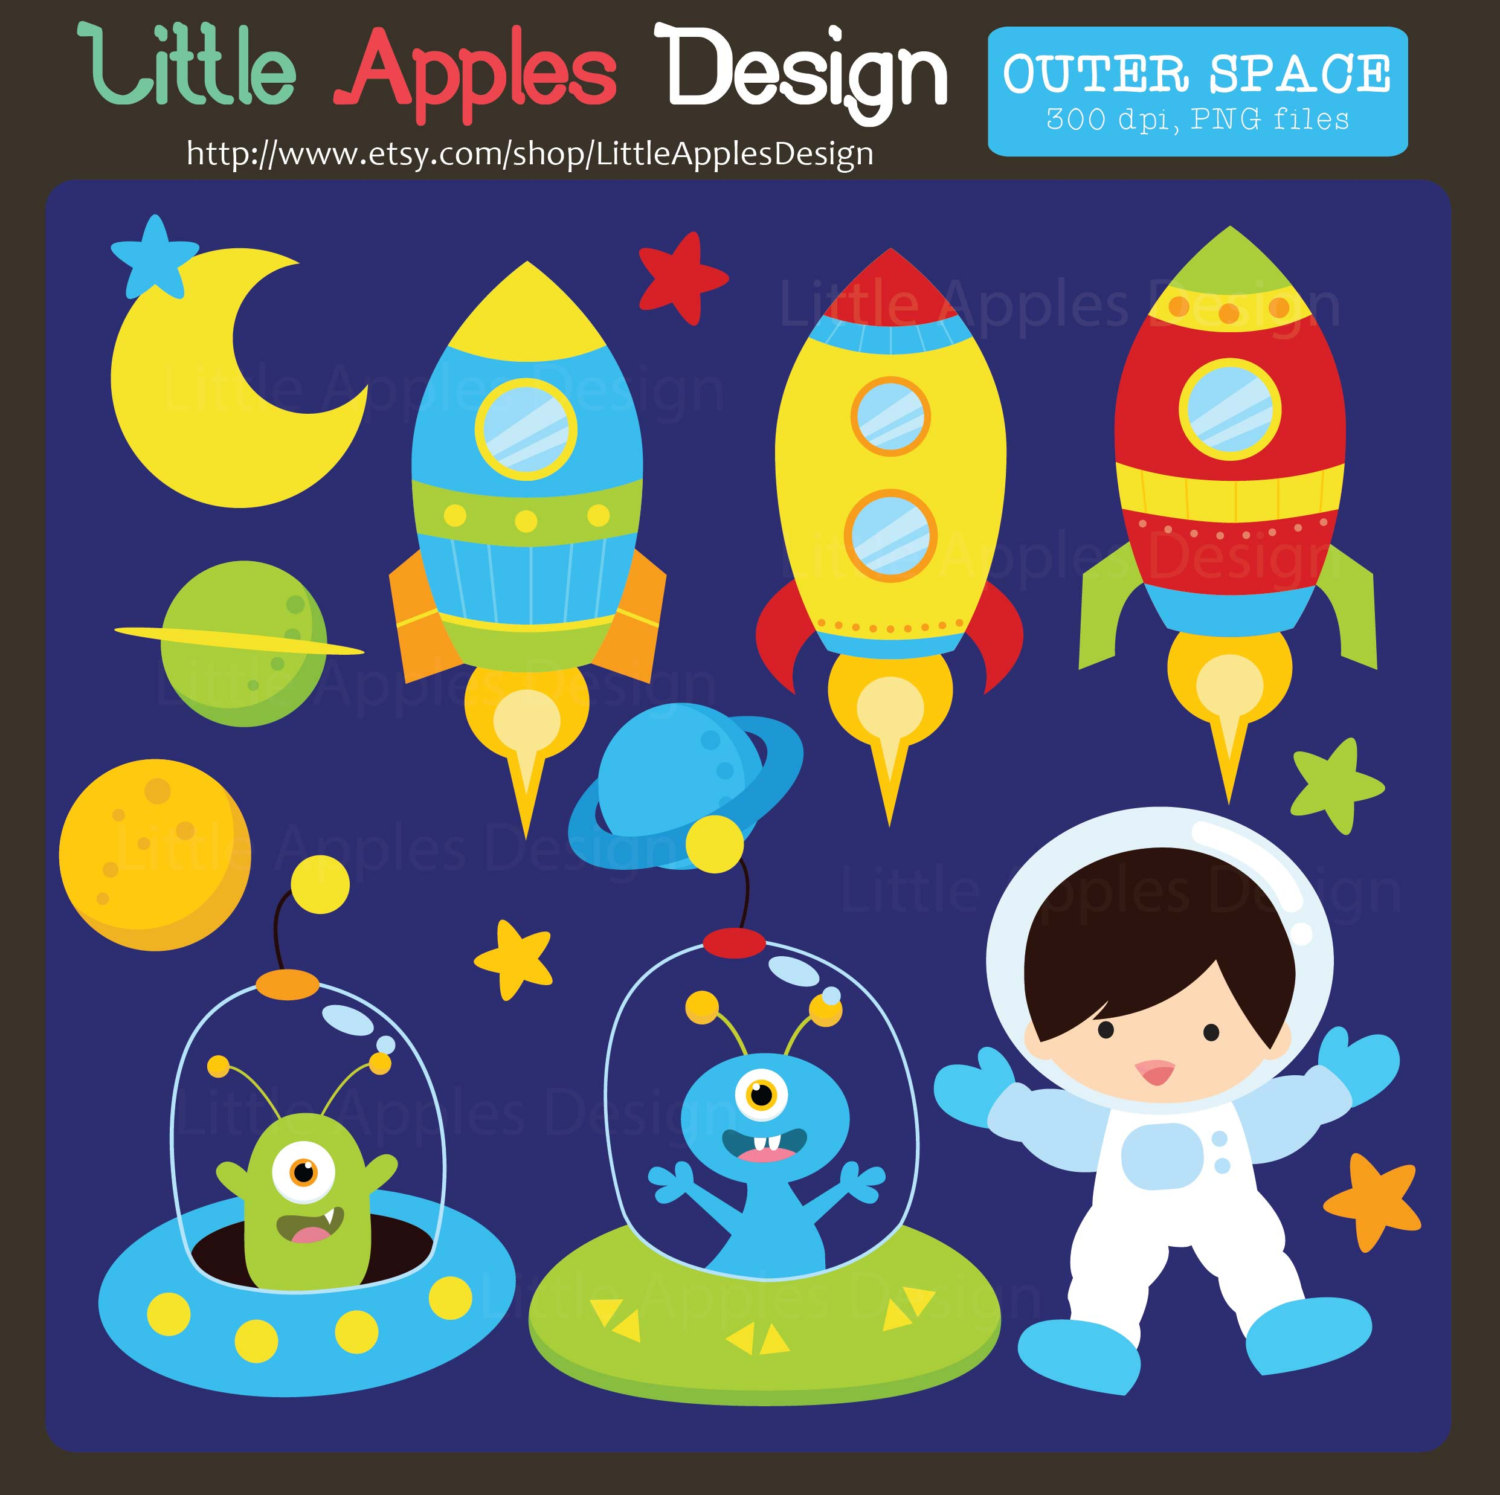 Free Outer Space Cliparts, Download Free Clip Art, Free Clip.